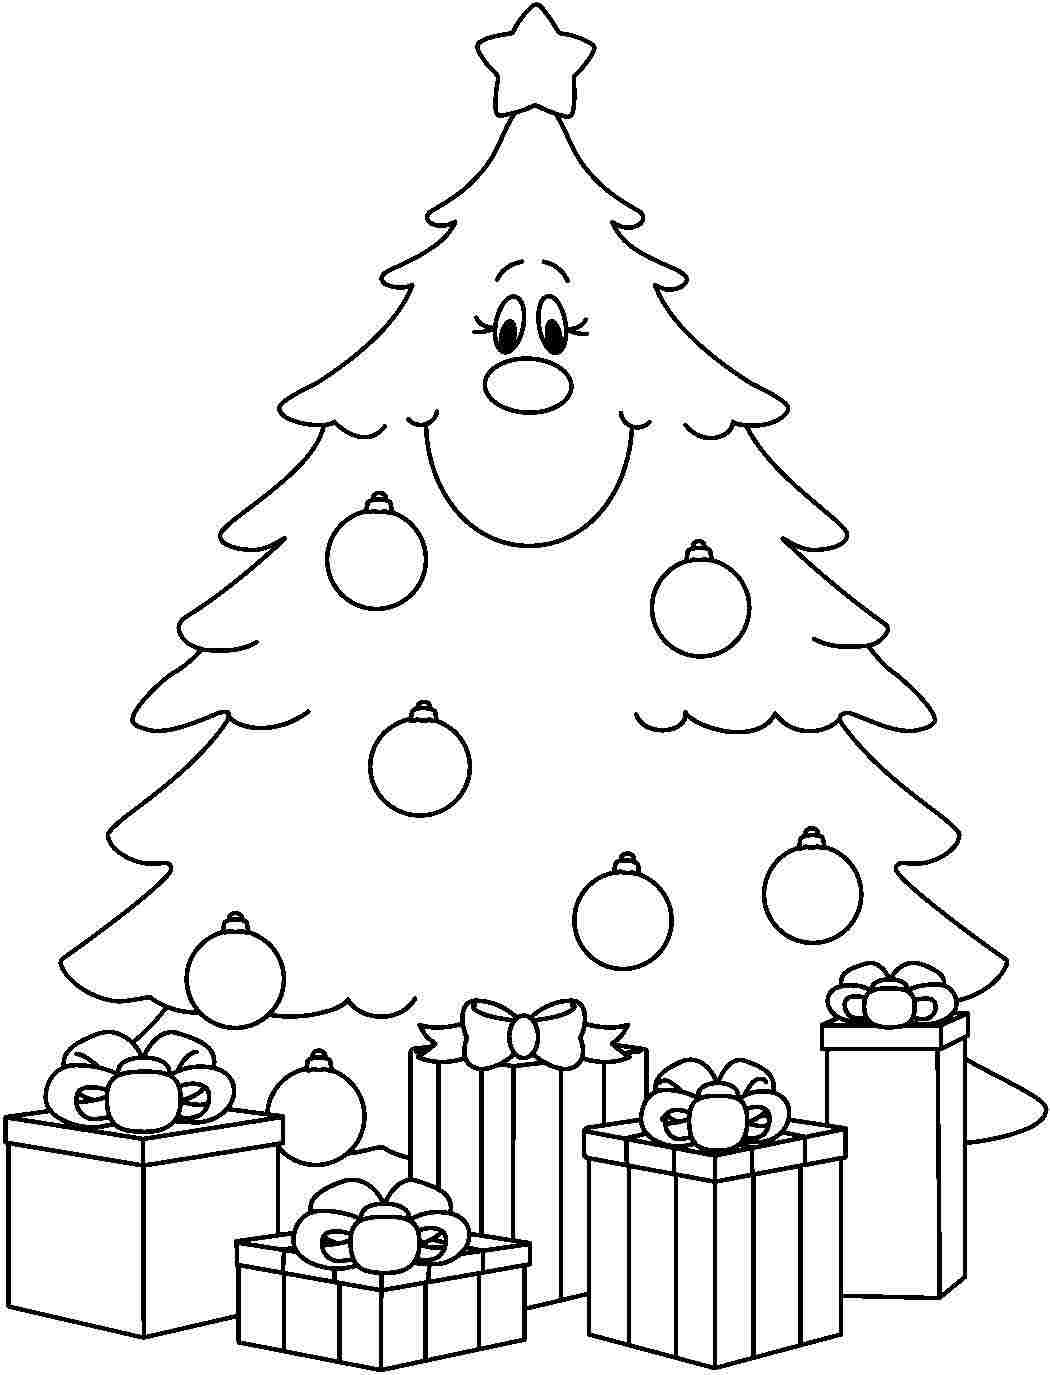 christmas drawings step by step how to draw a christmas figure step by step christmas drawings by christmas step step